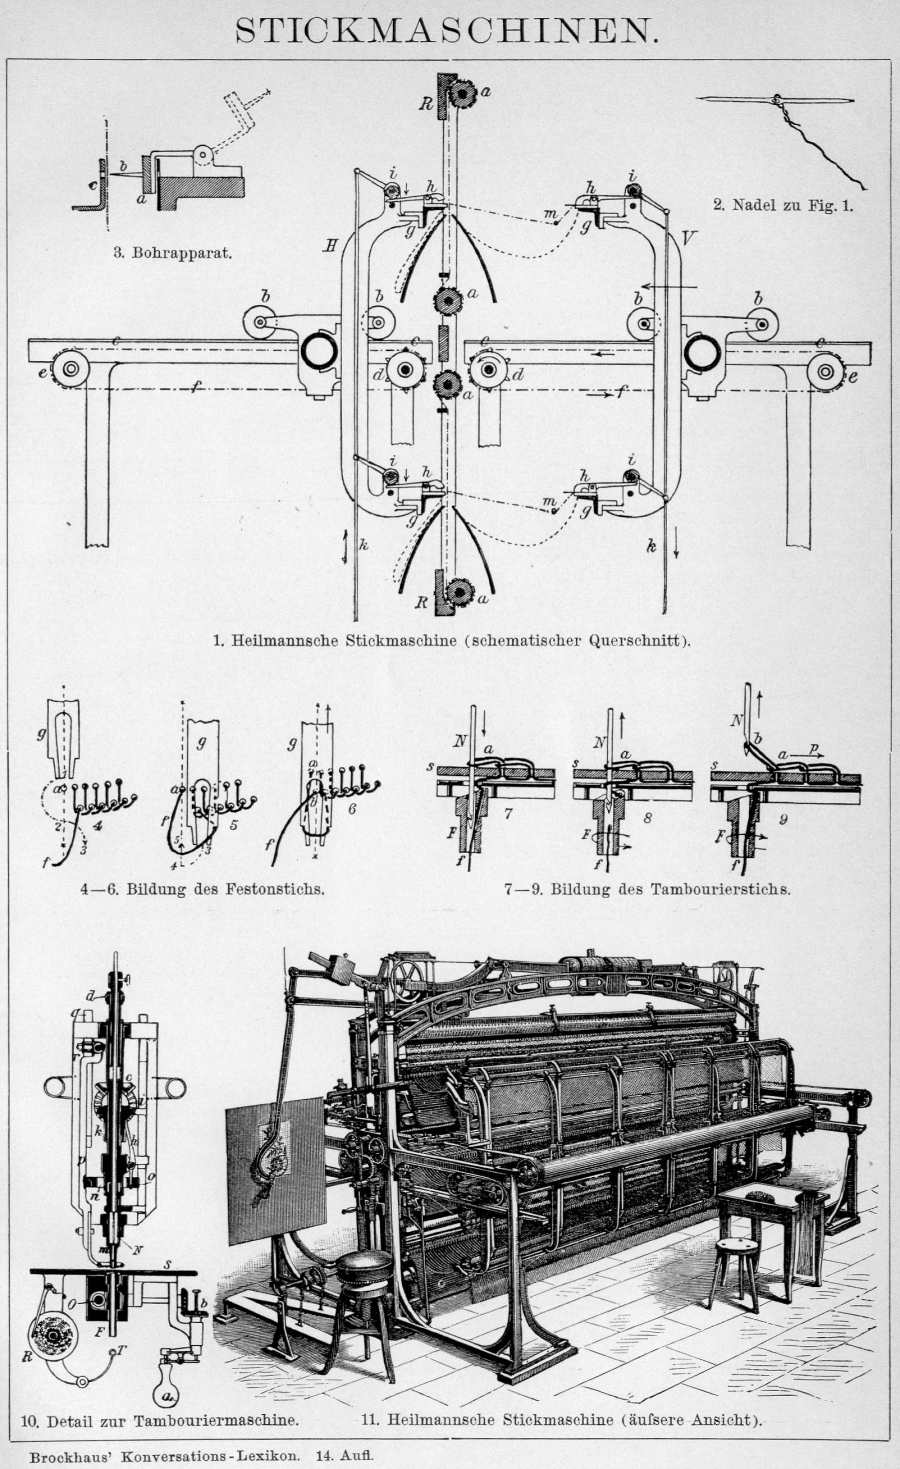 Illustration of a hand embroidery machine, late 19th century (TRC collection).